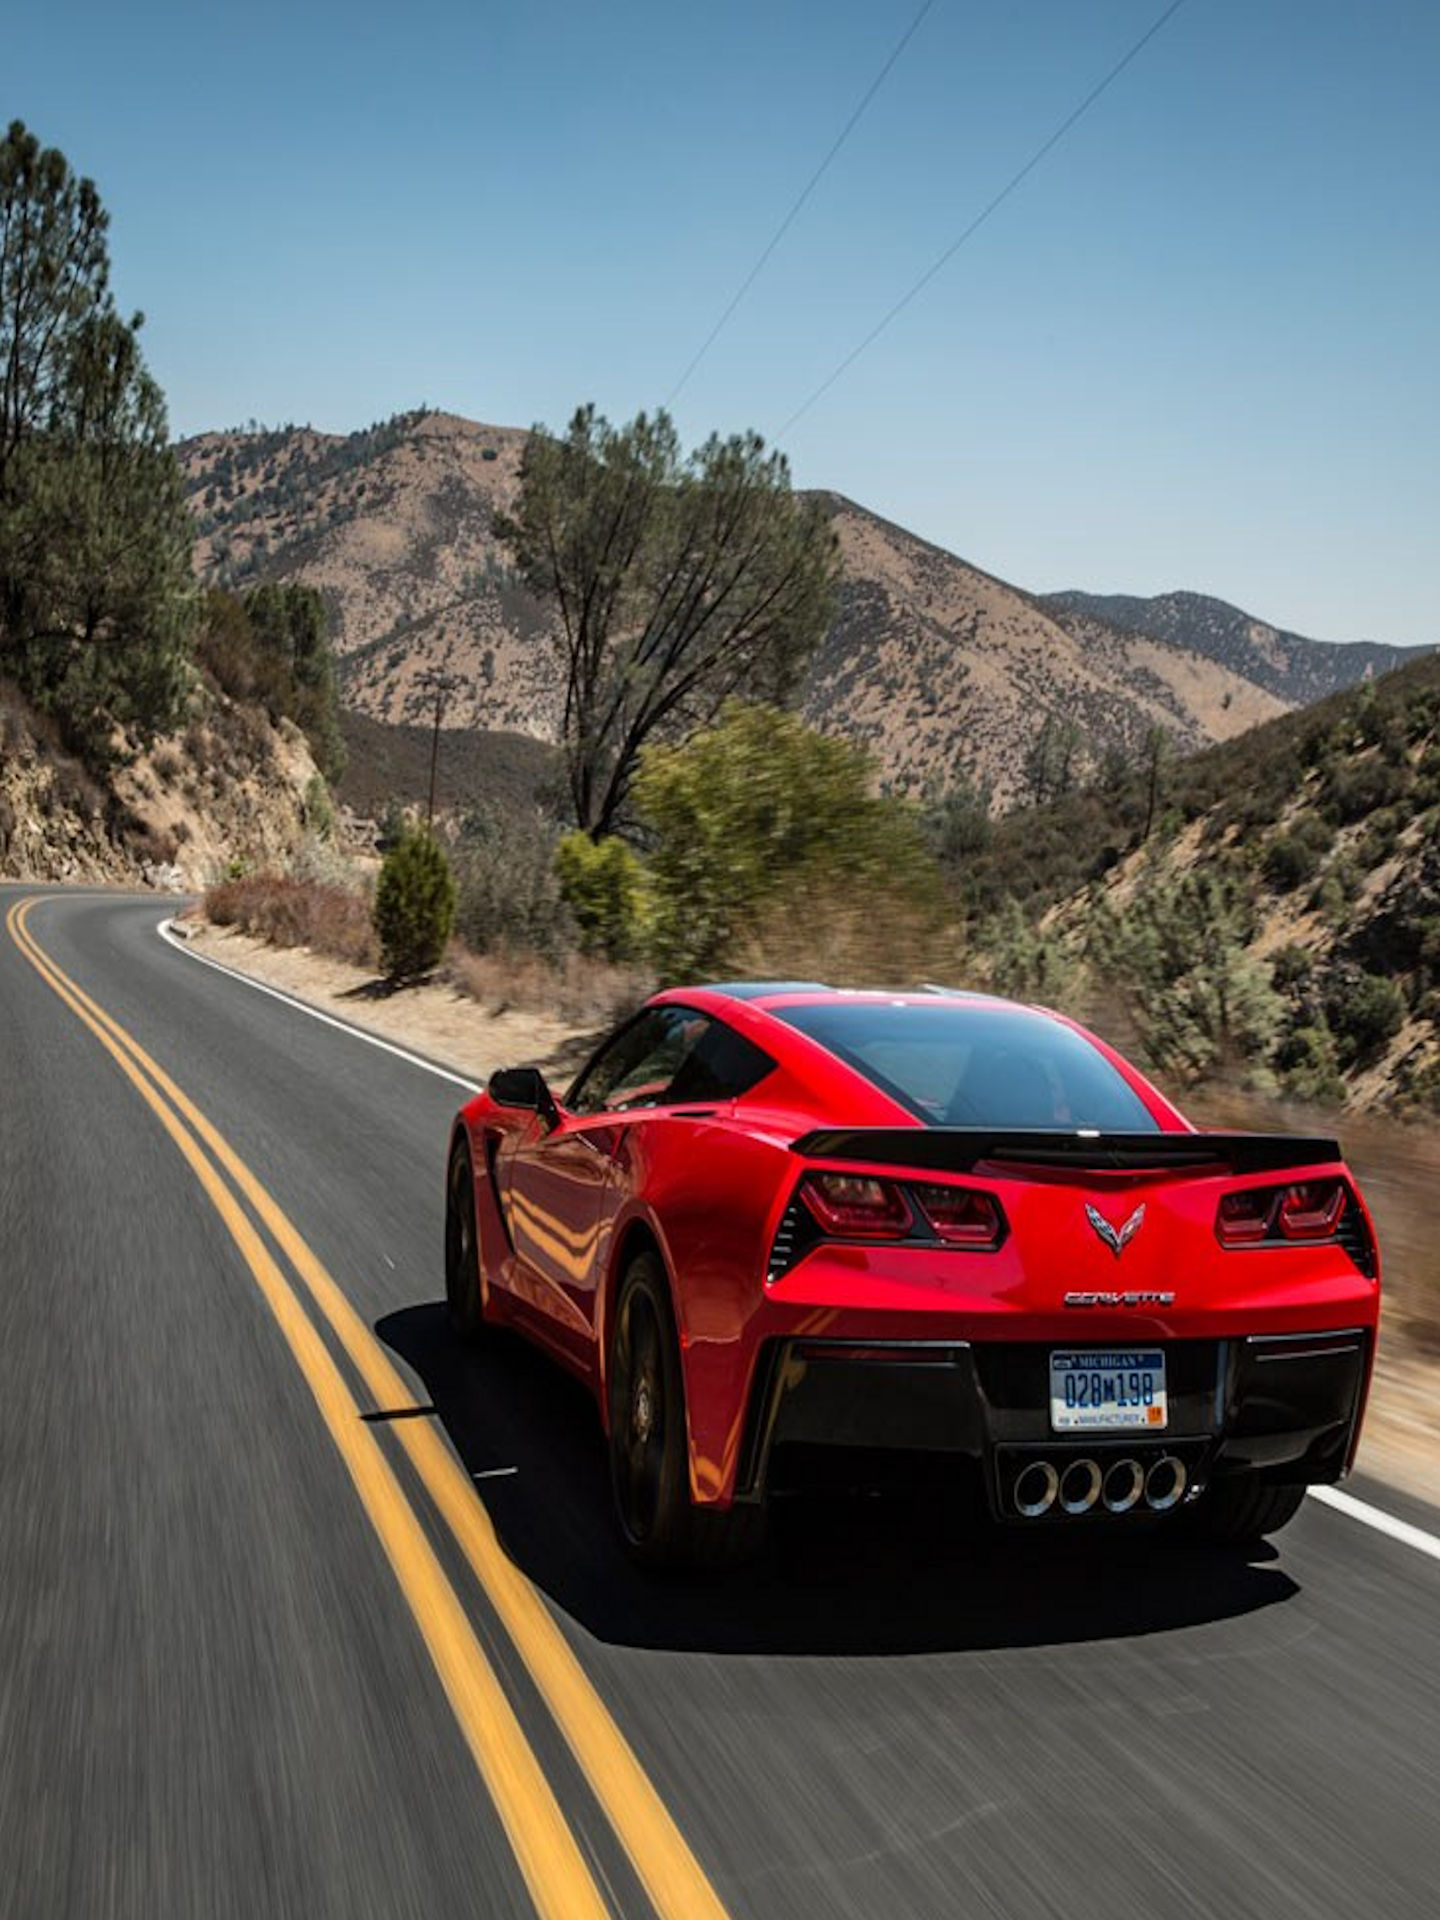 corvette_on_road_home